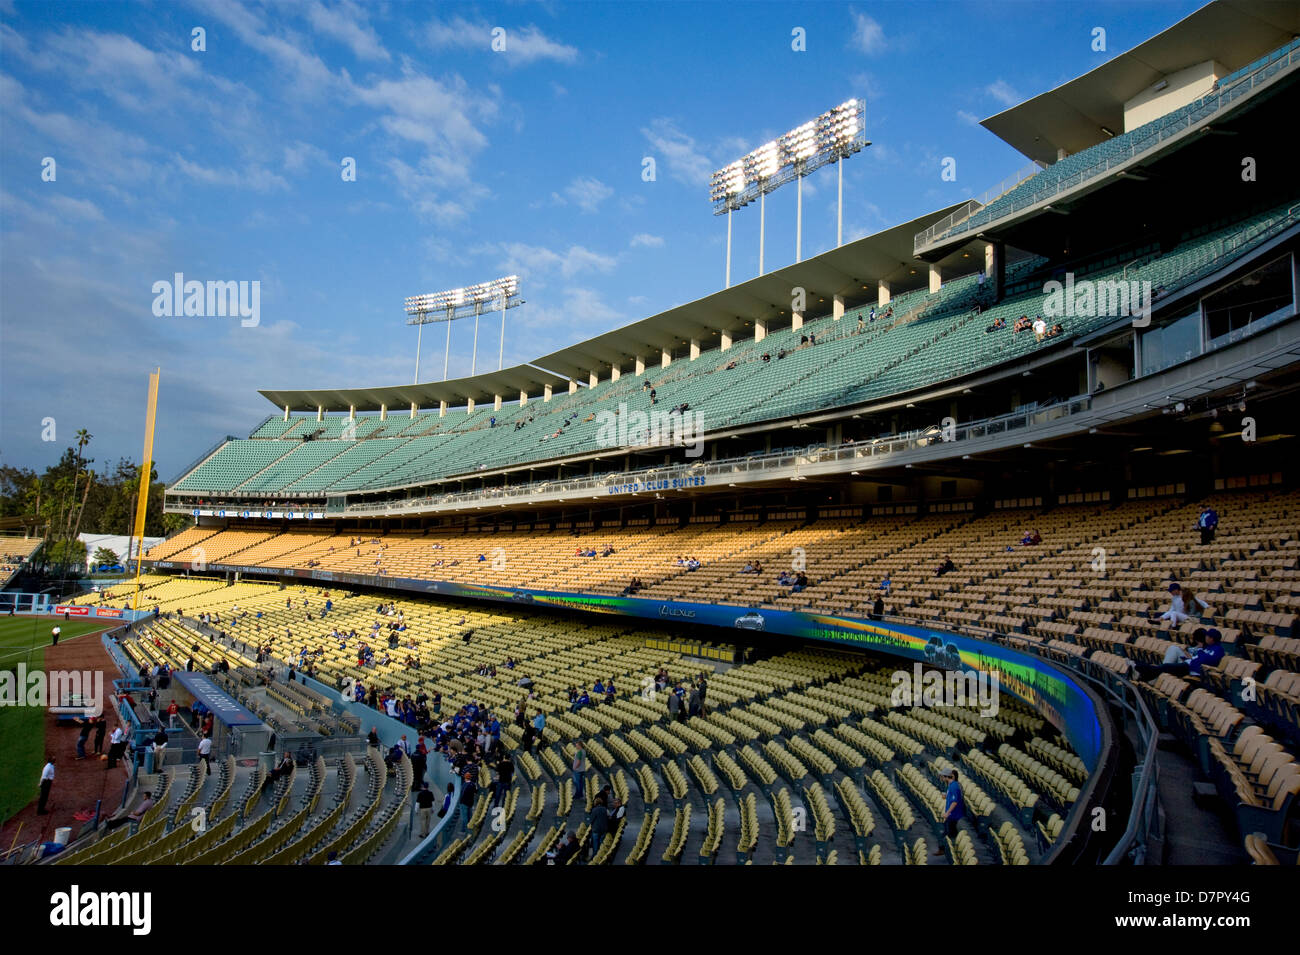 Fans arriving at Dodger Stadium in late afternoon for a night game - Stock Image